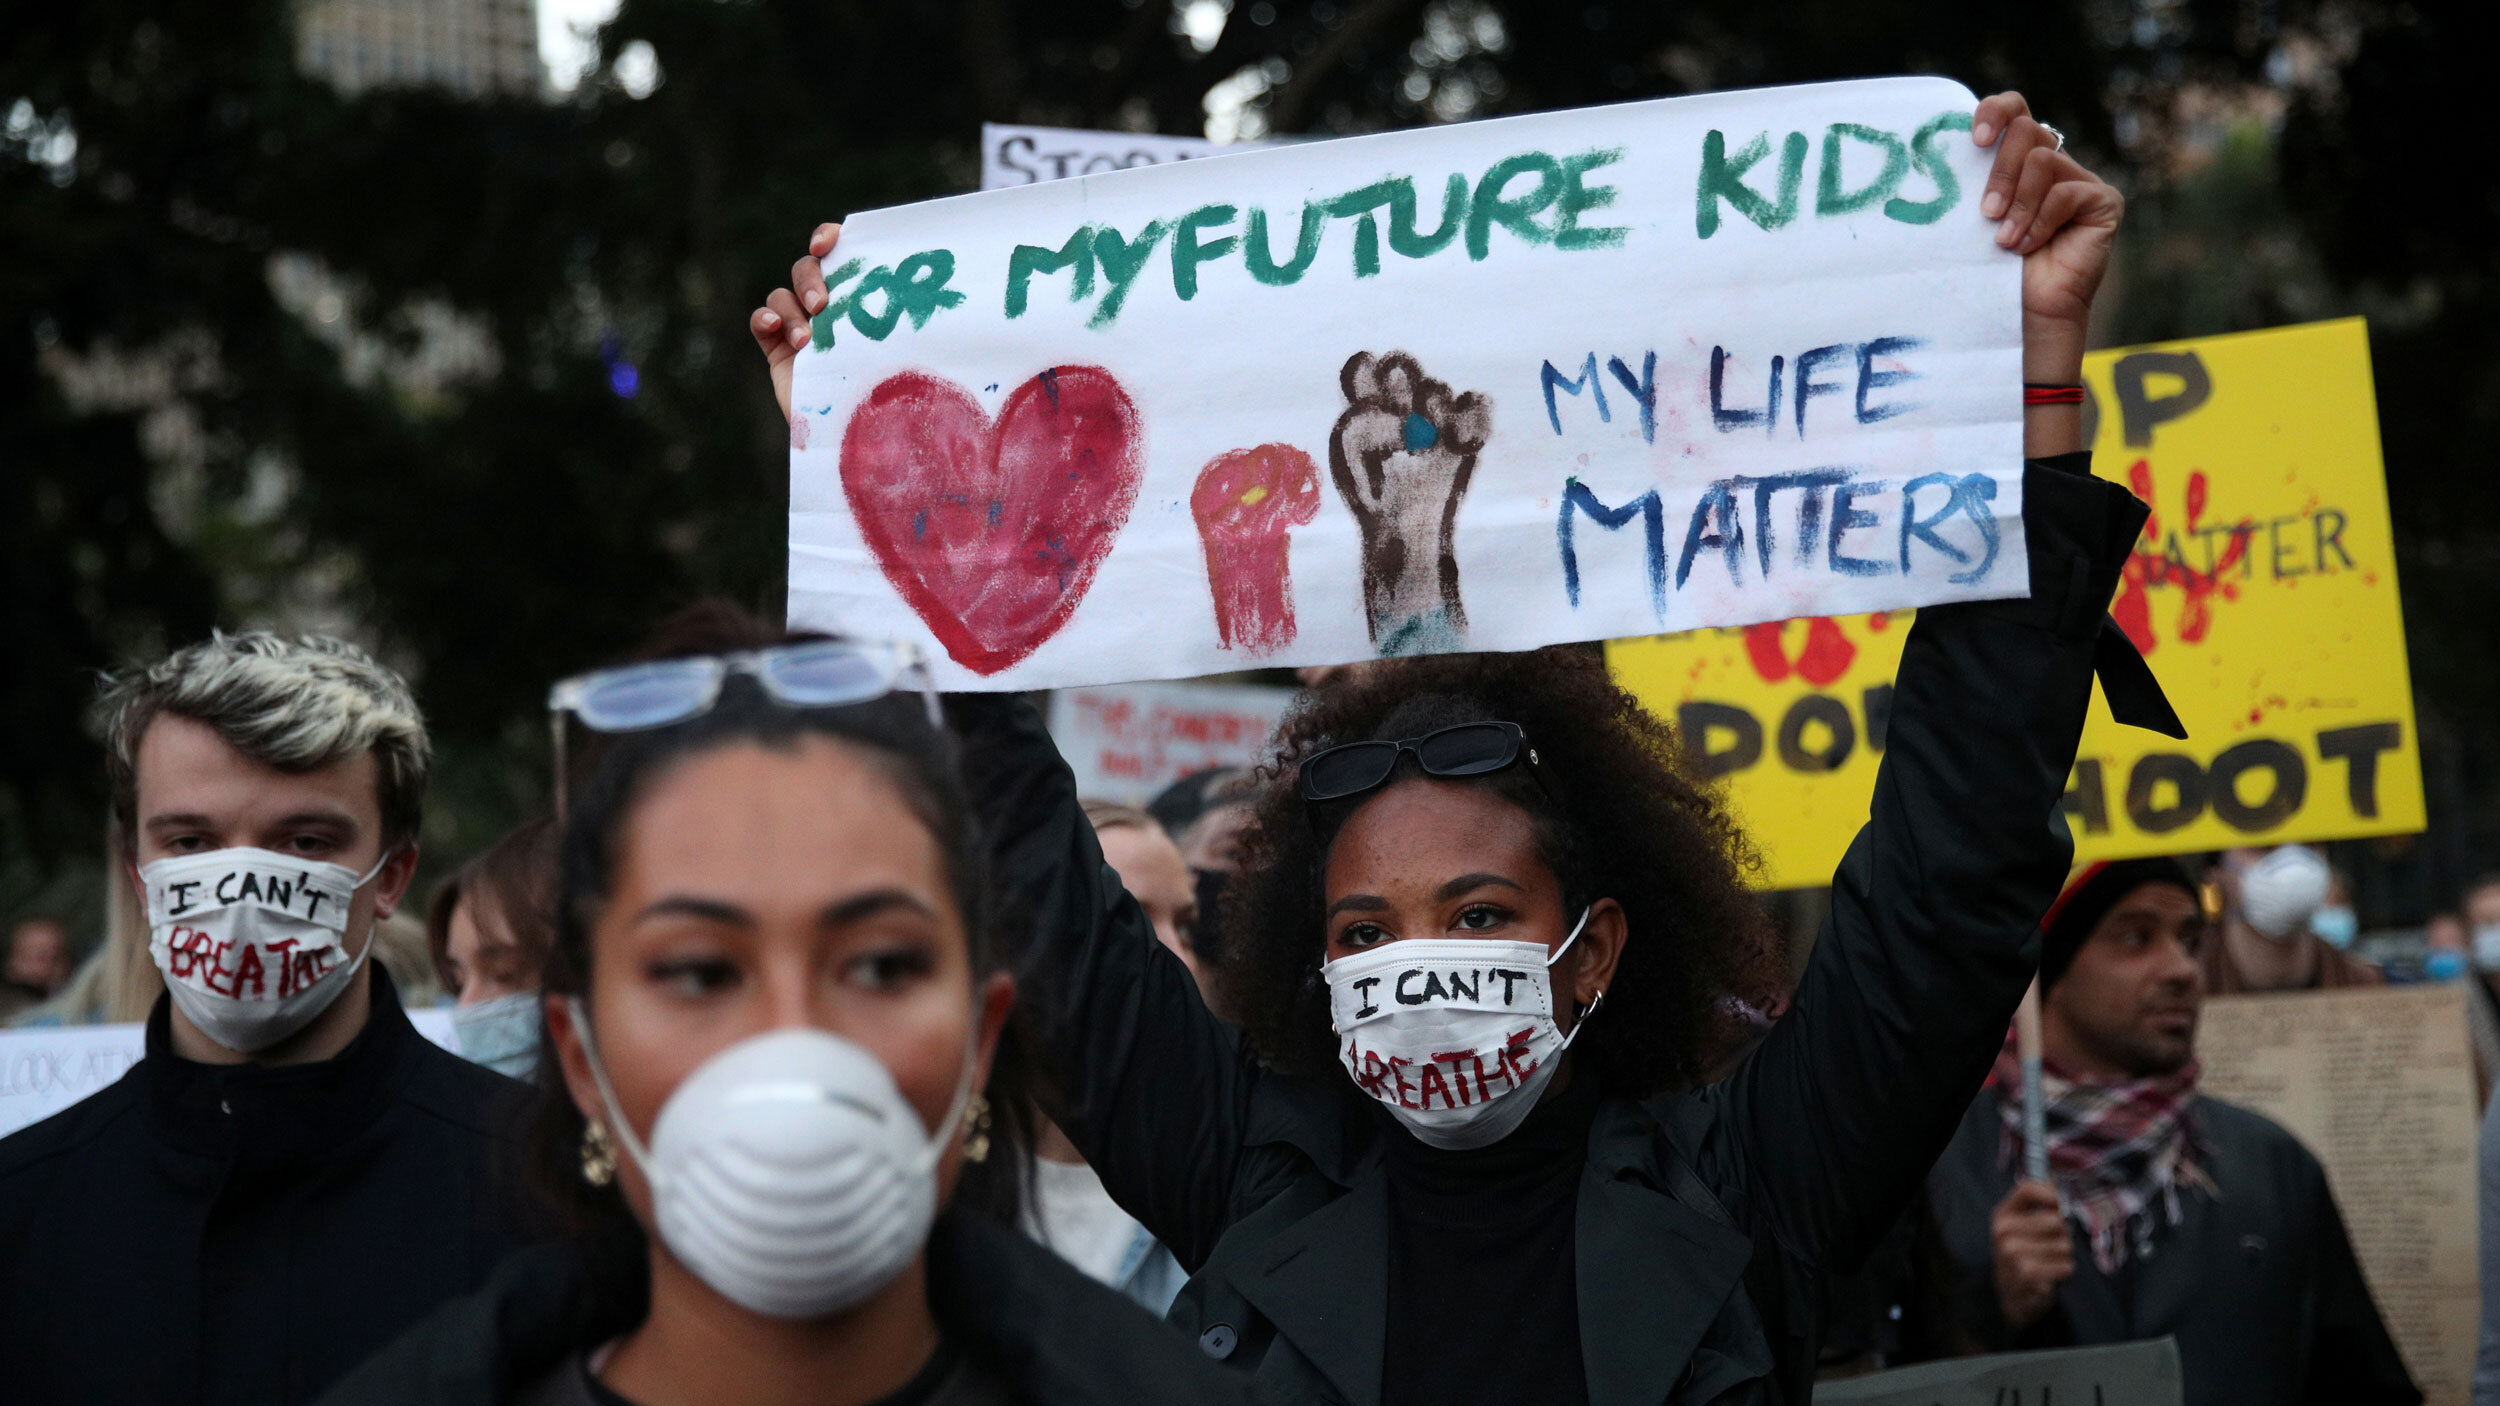 """People protest, one woman with a sign """"for my future kids my life matters"""""""